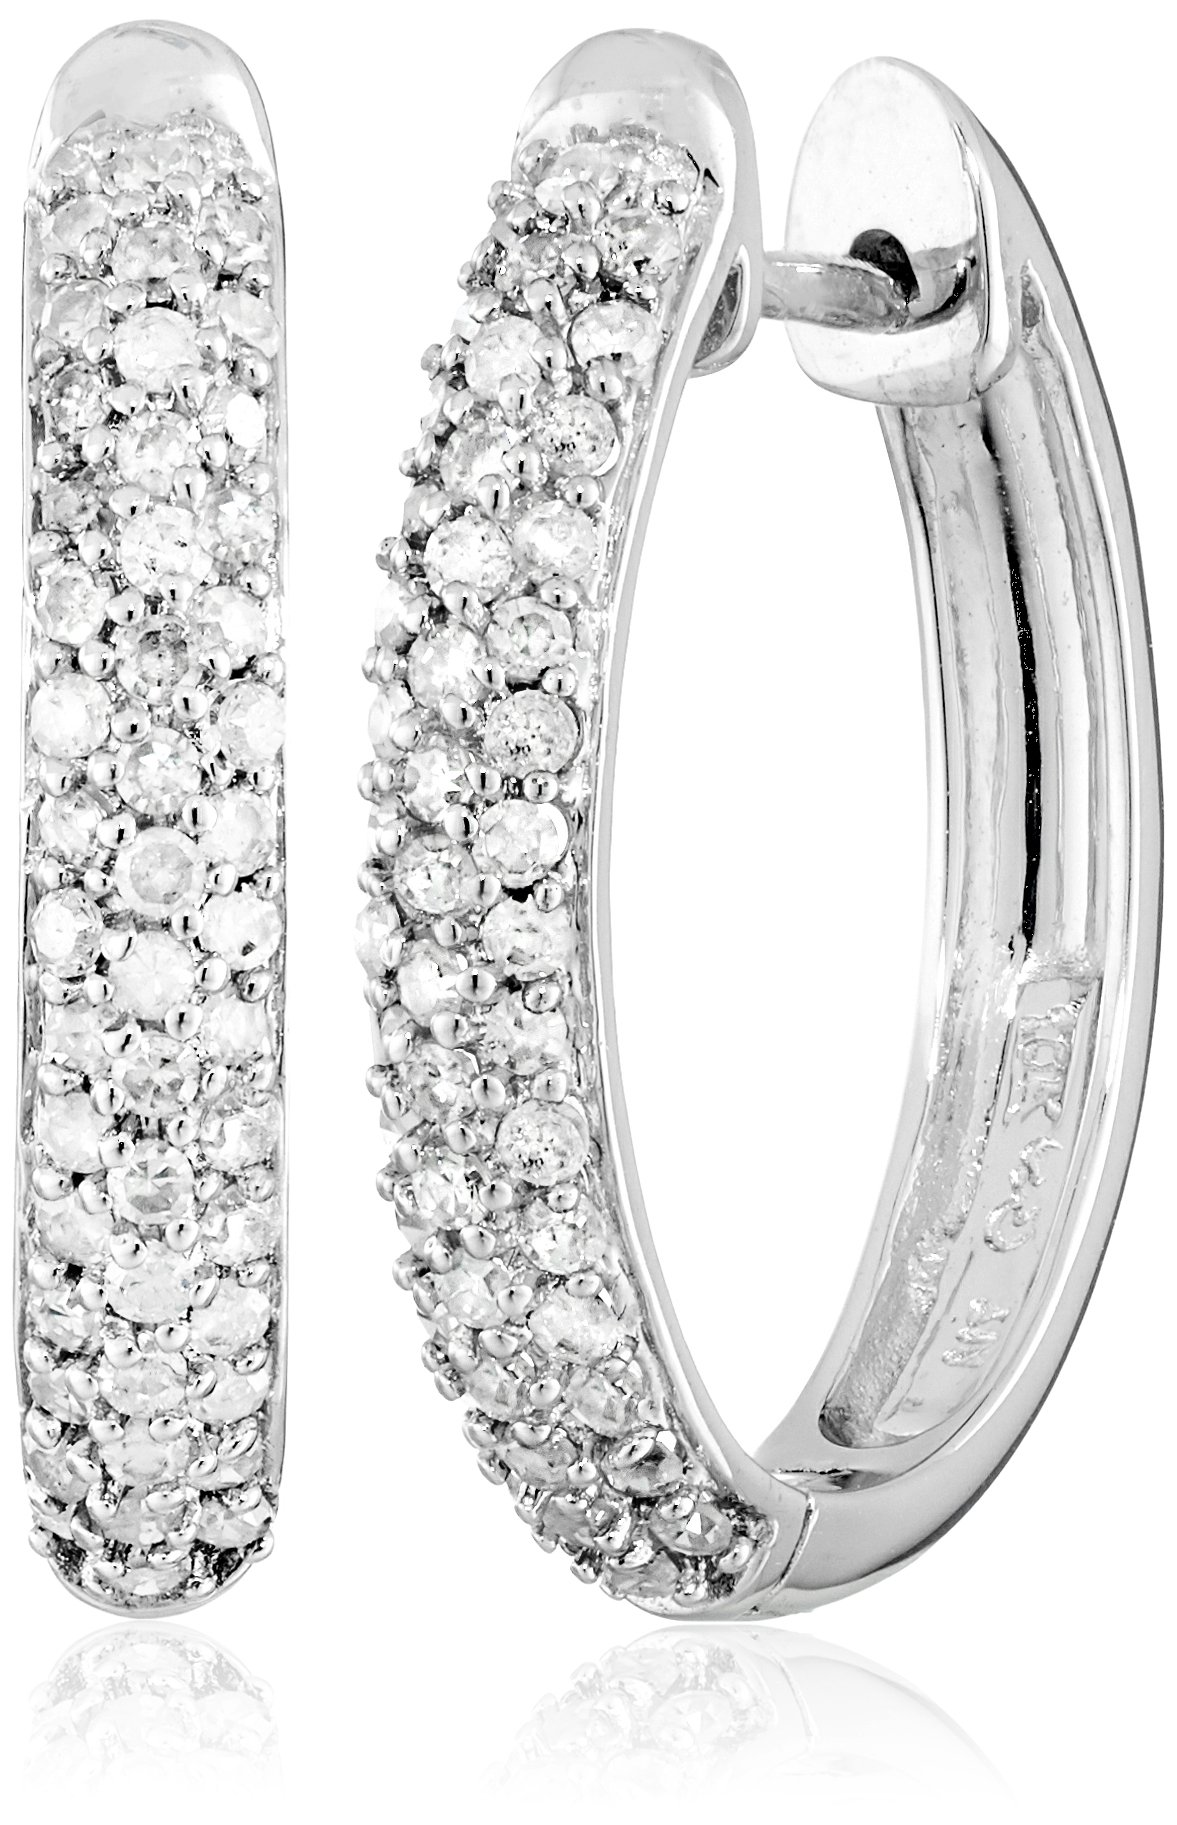 10k White Gold Oval Pave Diamond Hoop Earrings (1/2 cttw, H-I Color, I2-I3 Clarity)